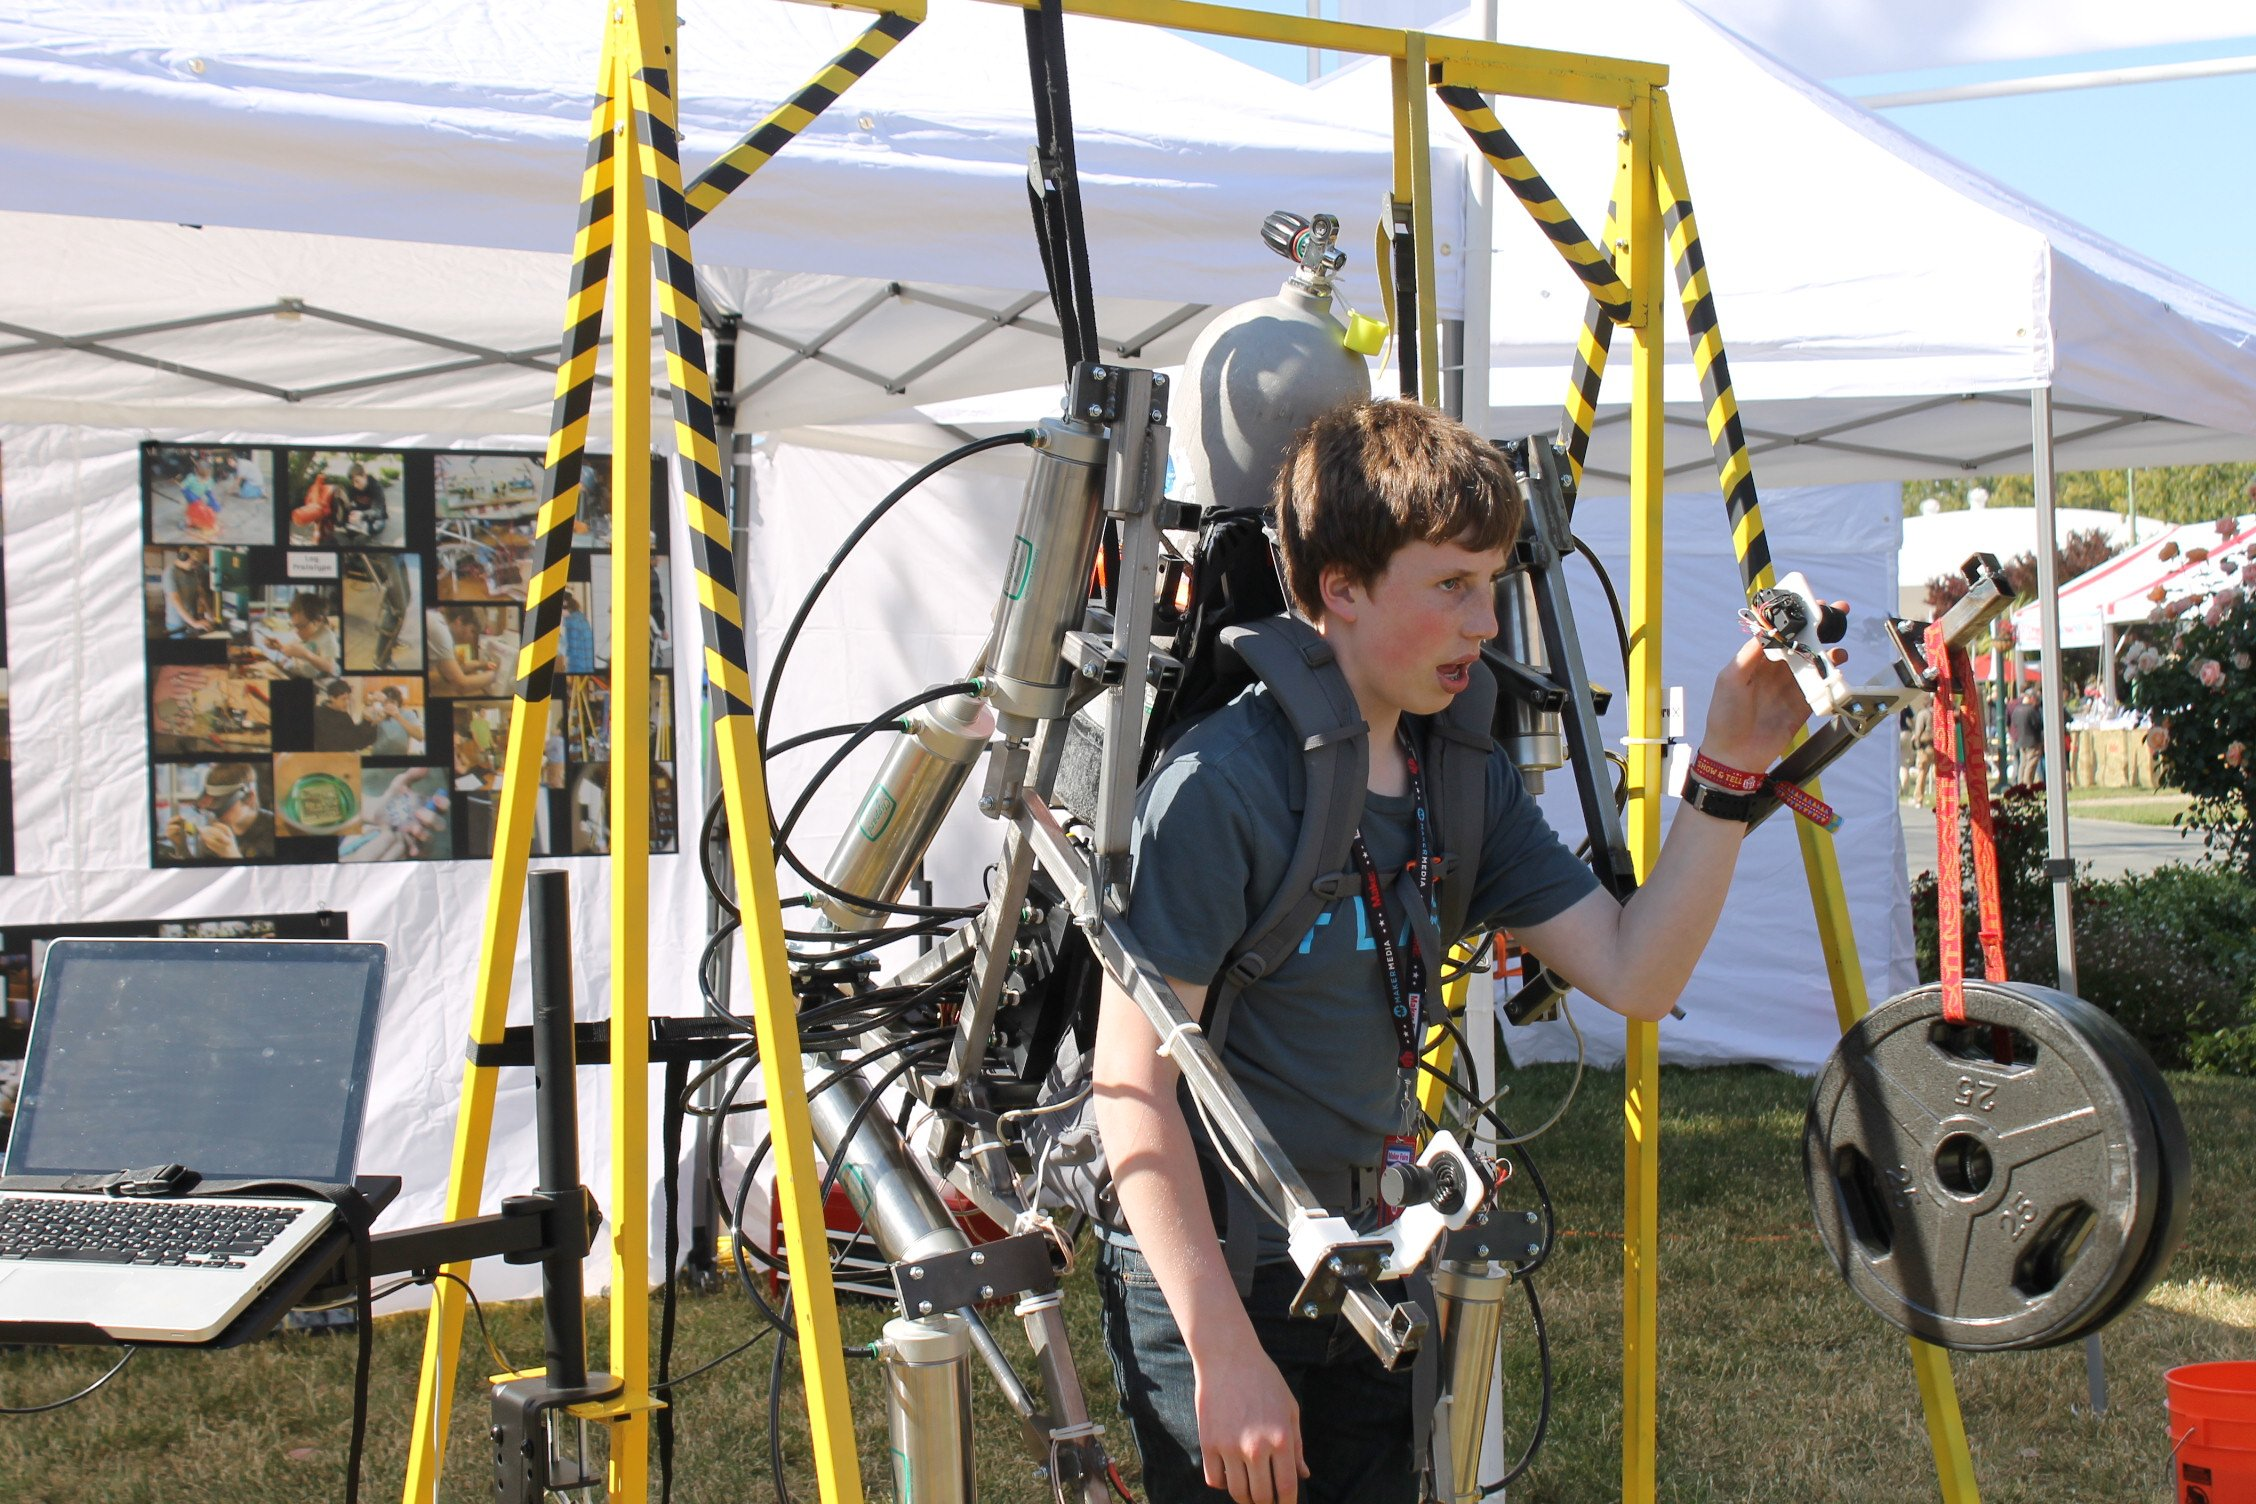 ajax-high-schoolers-built-exosuit-that-can-lift-400-pounds